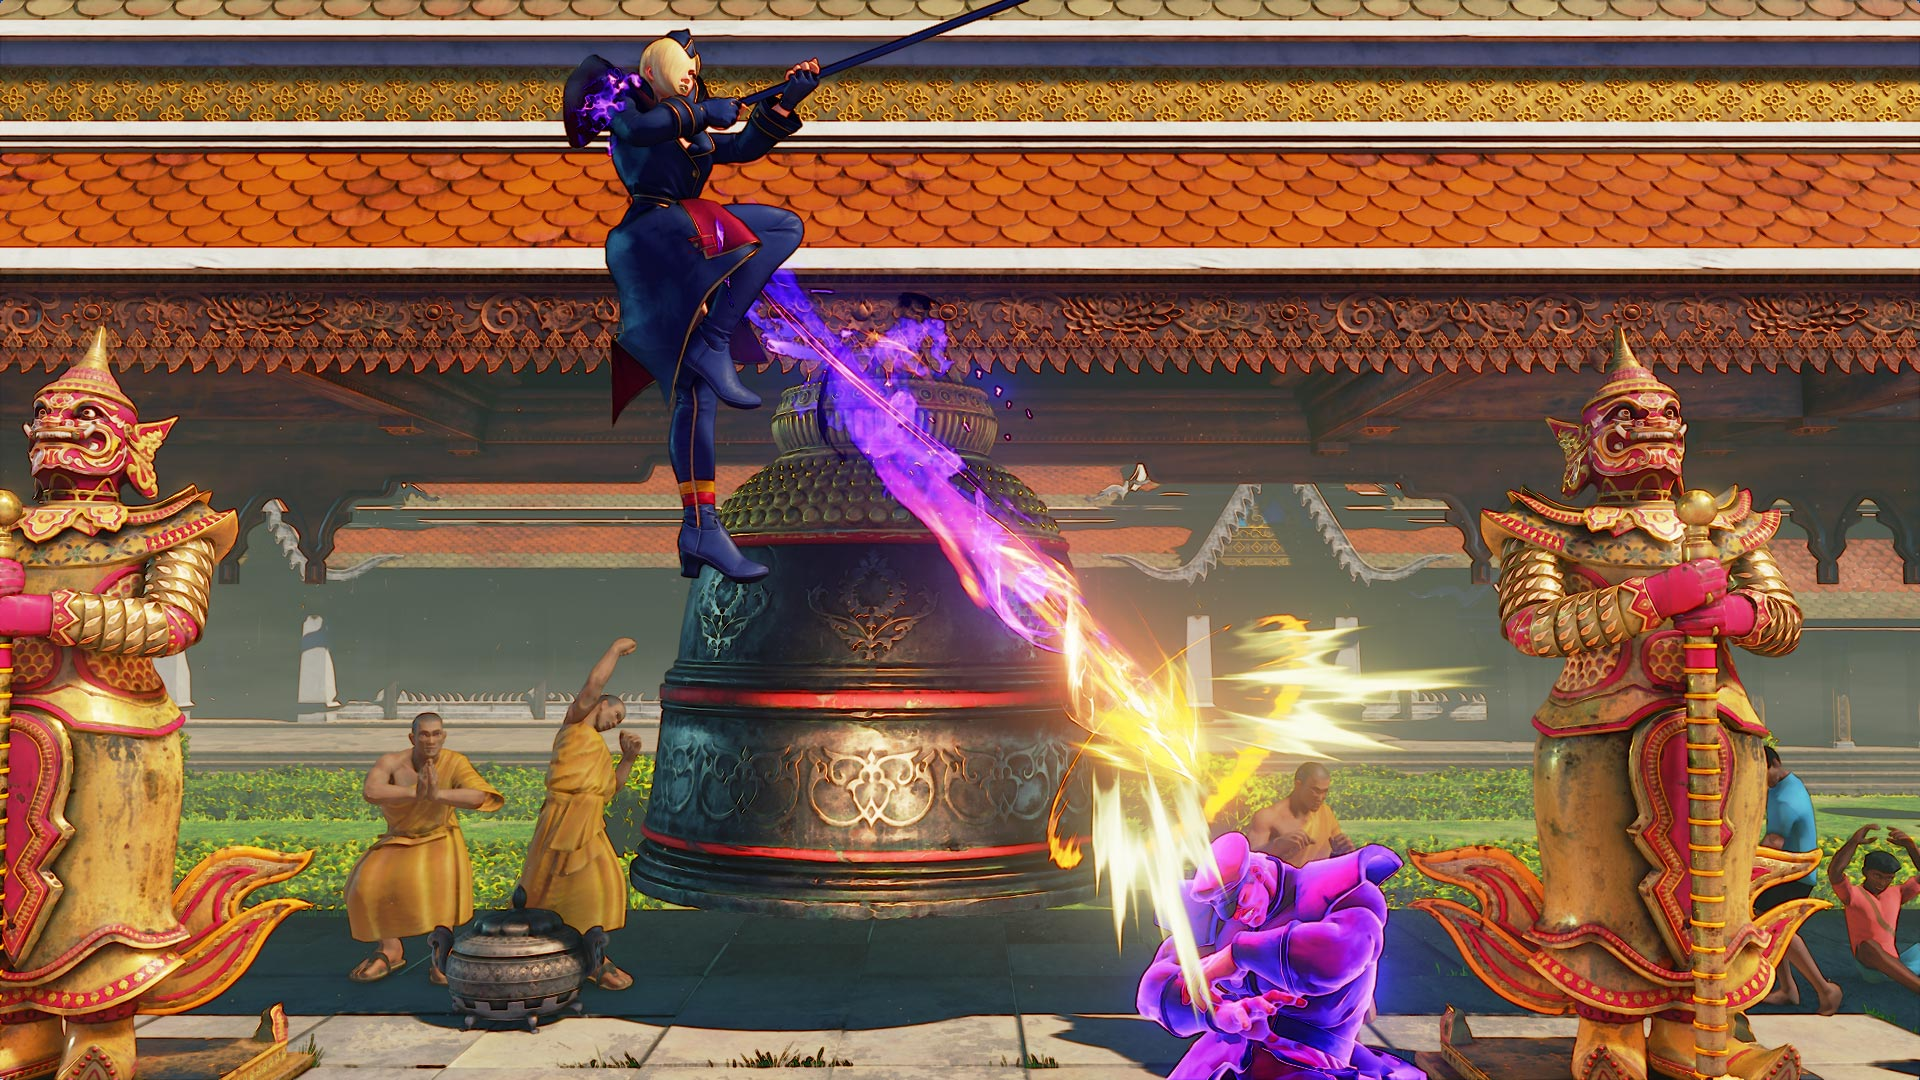 Falke in Street Fighter 5: Arcade Edition 2 out of 15 image gallery